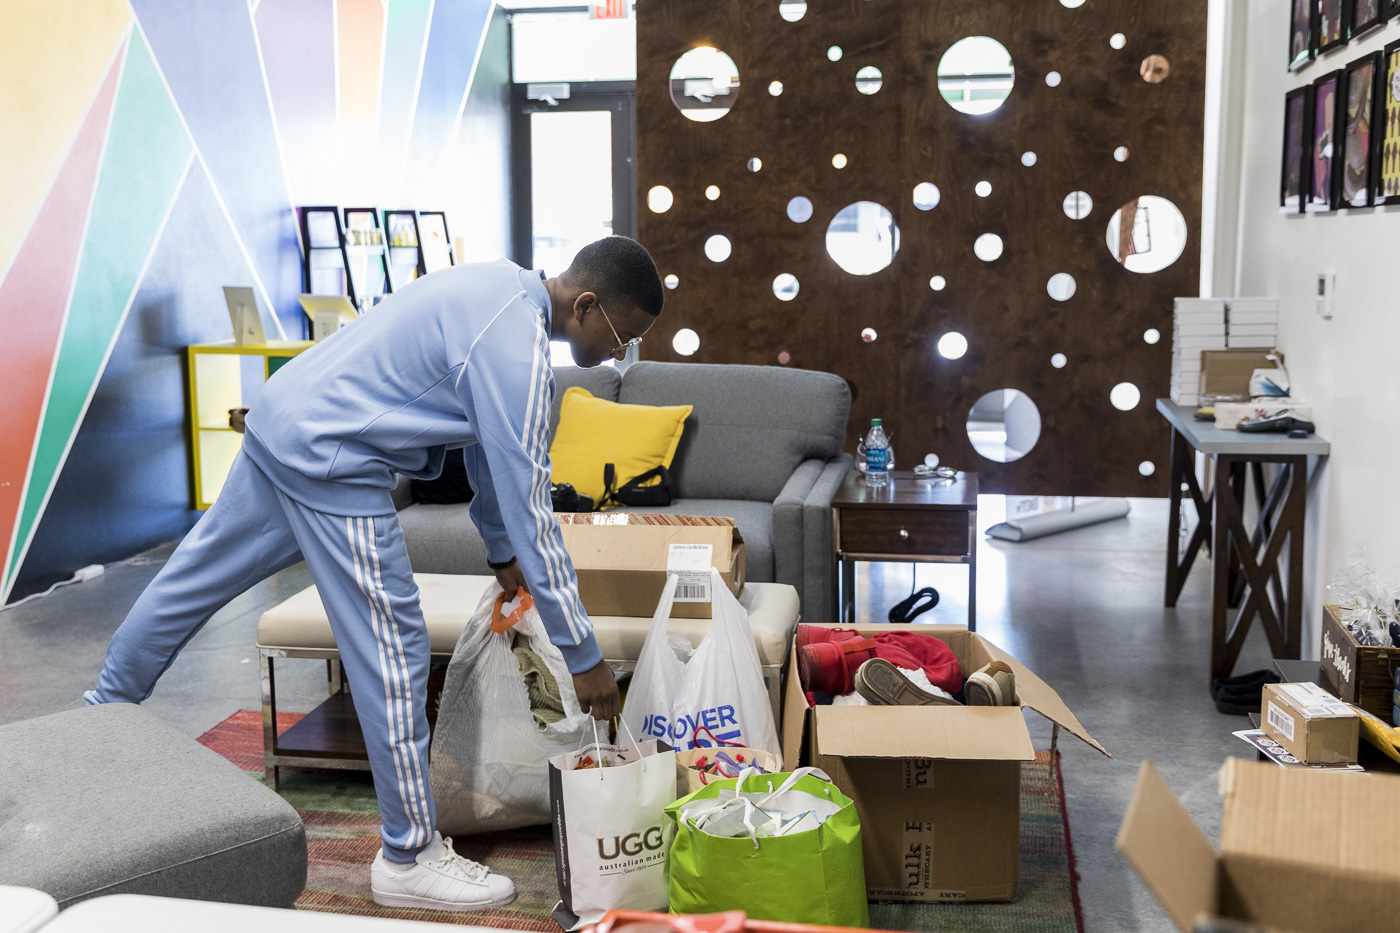 young man packs bags of donations to give to folks in need